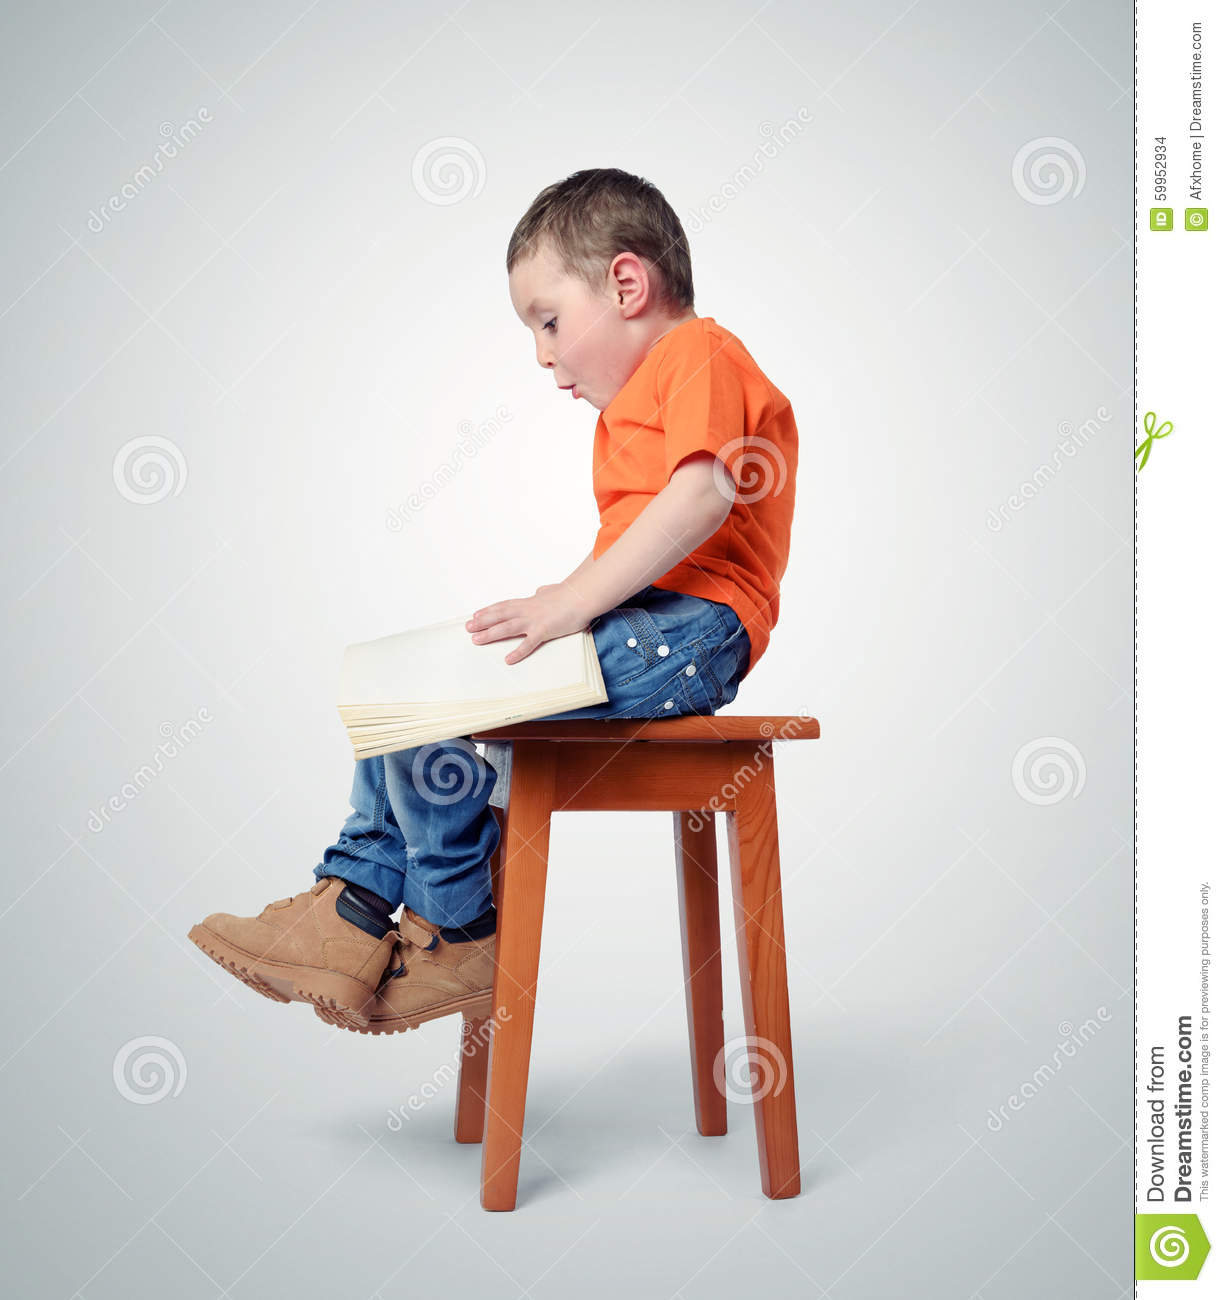 Child Sitting On A Chair With A Book Stock Photo Image